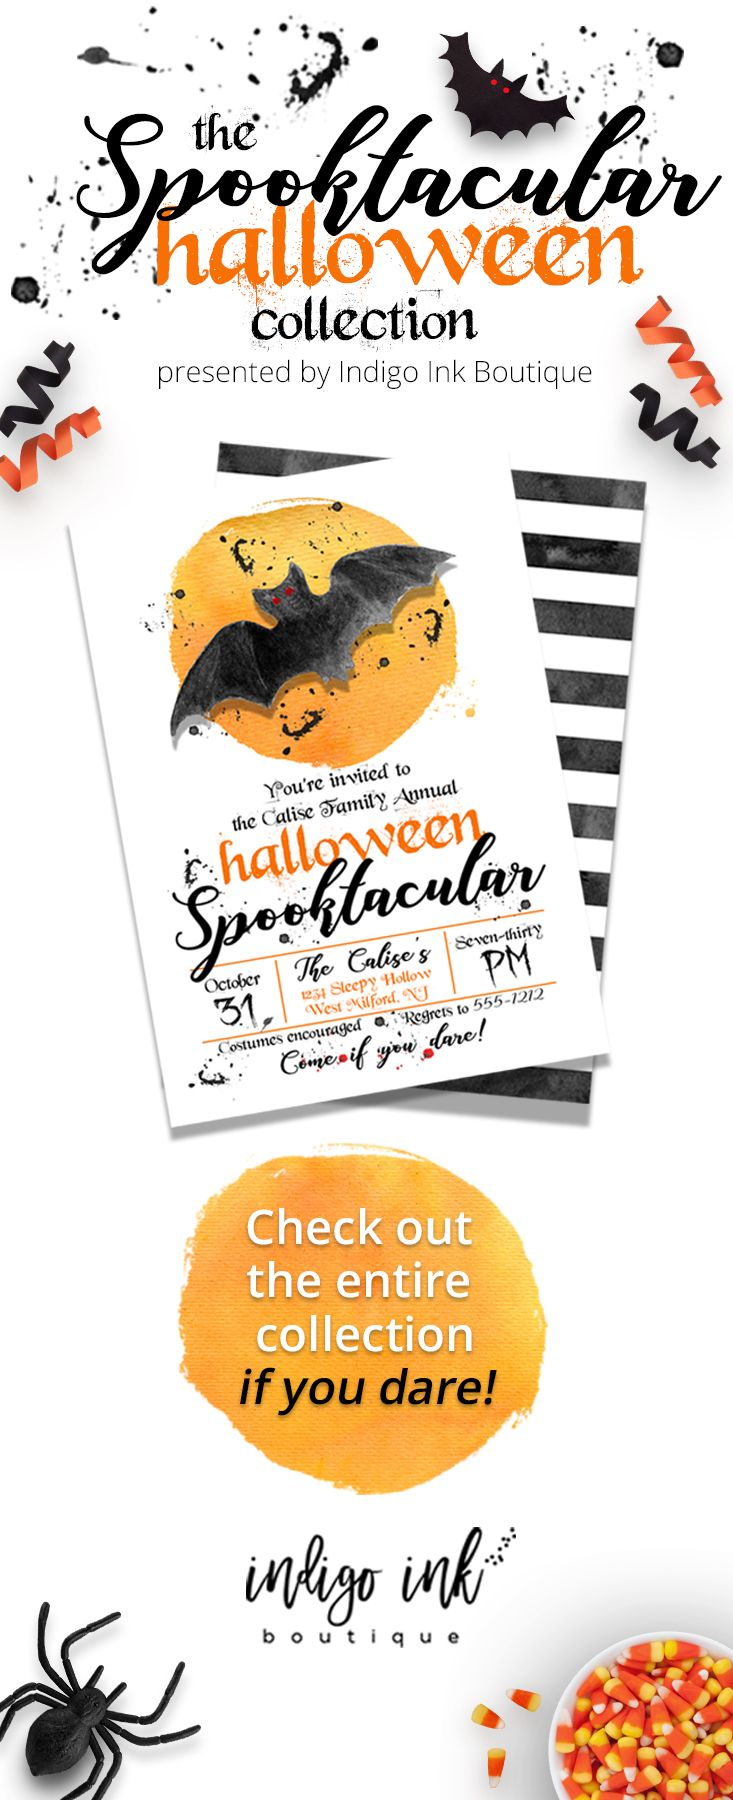 photograph about Halloween Invites Printable referred to as Halloween Invitation Printable Obtain Halloween Invite